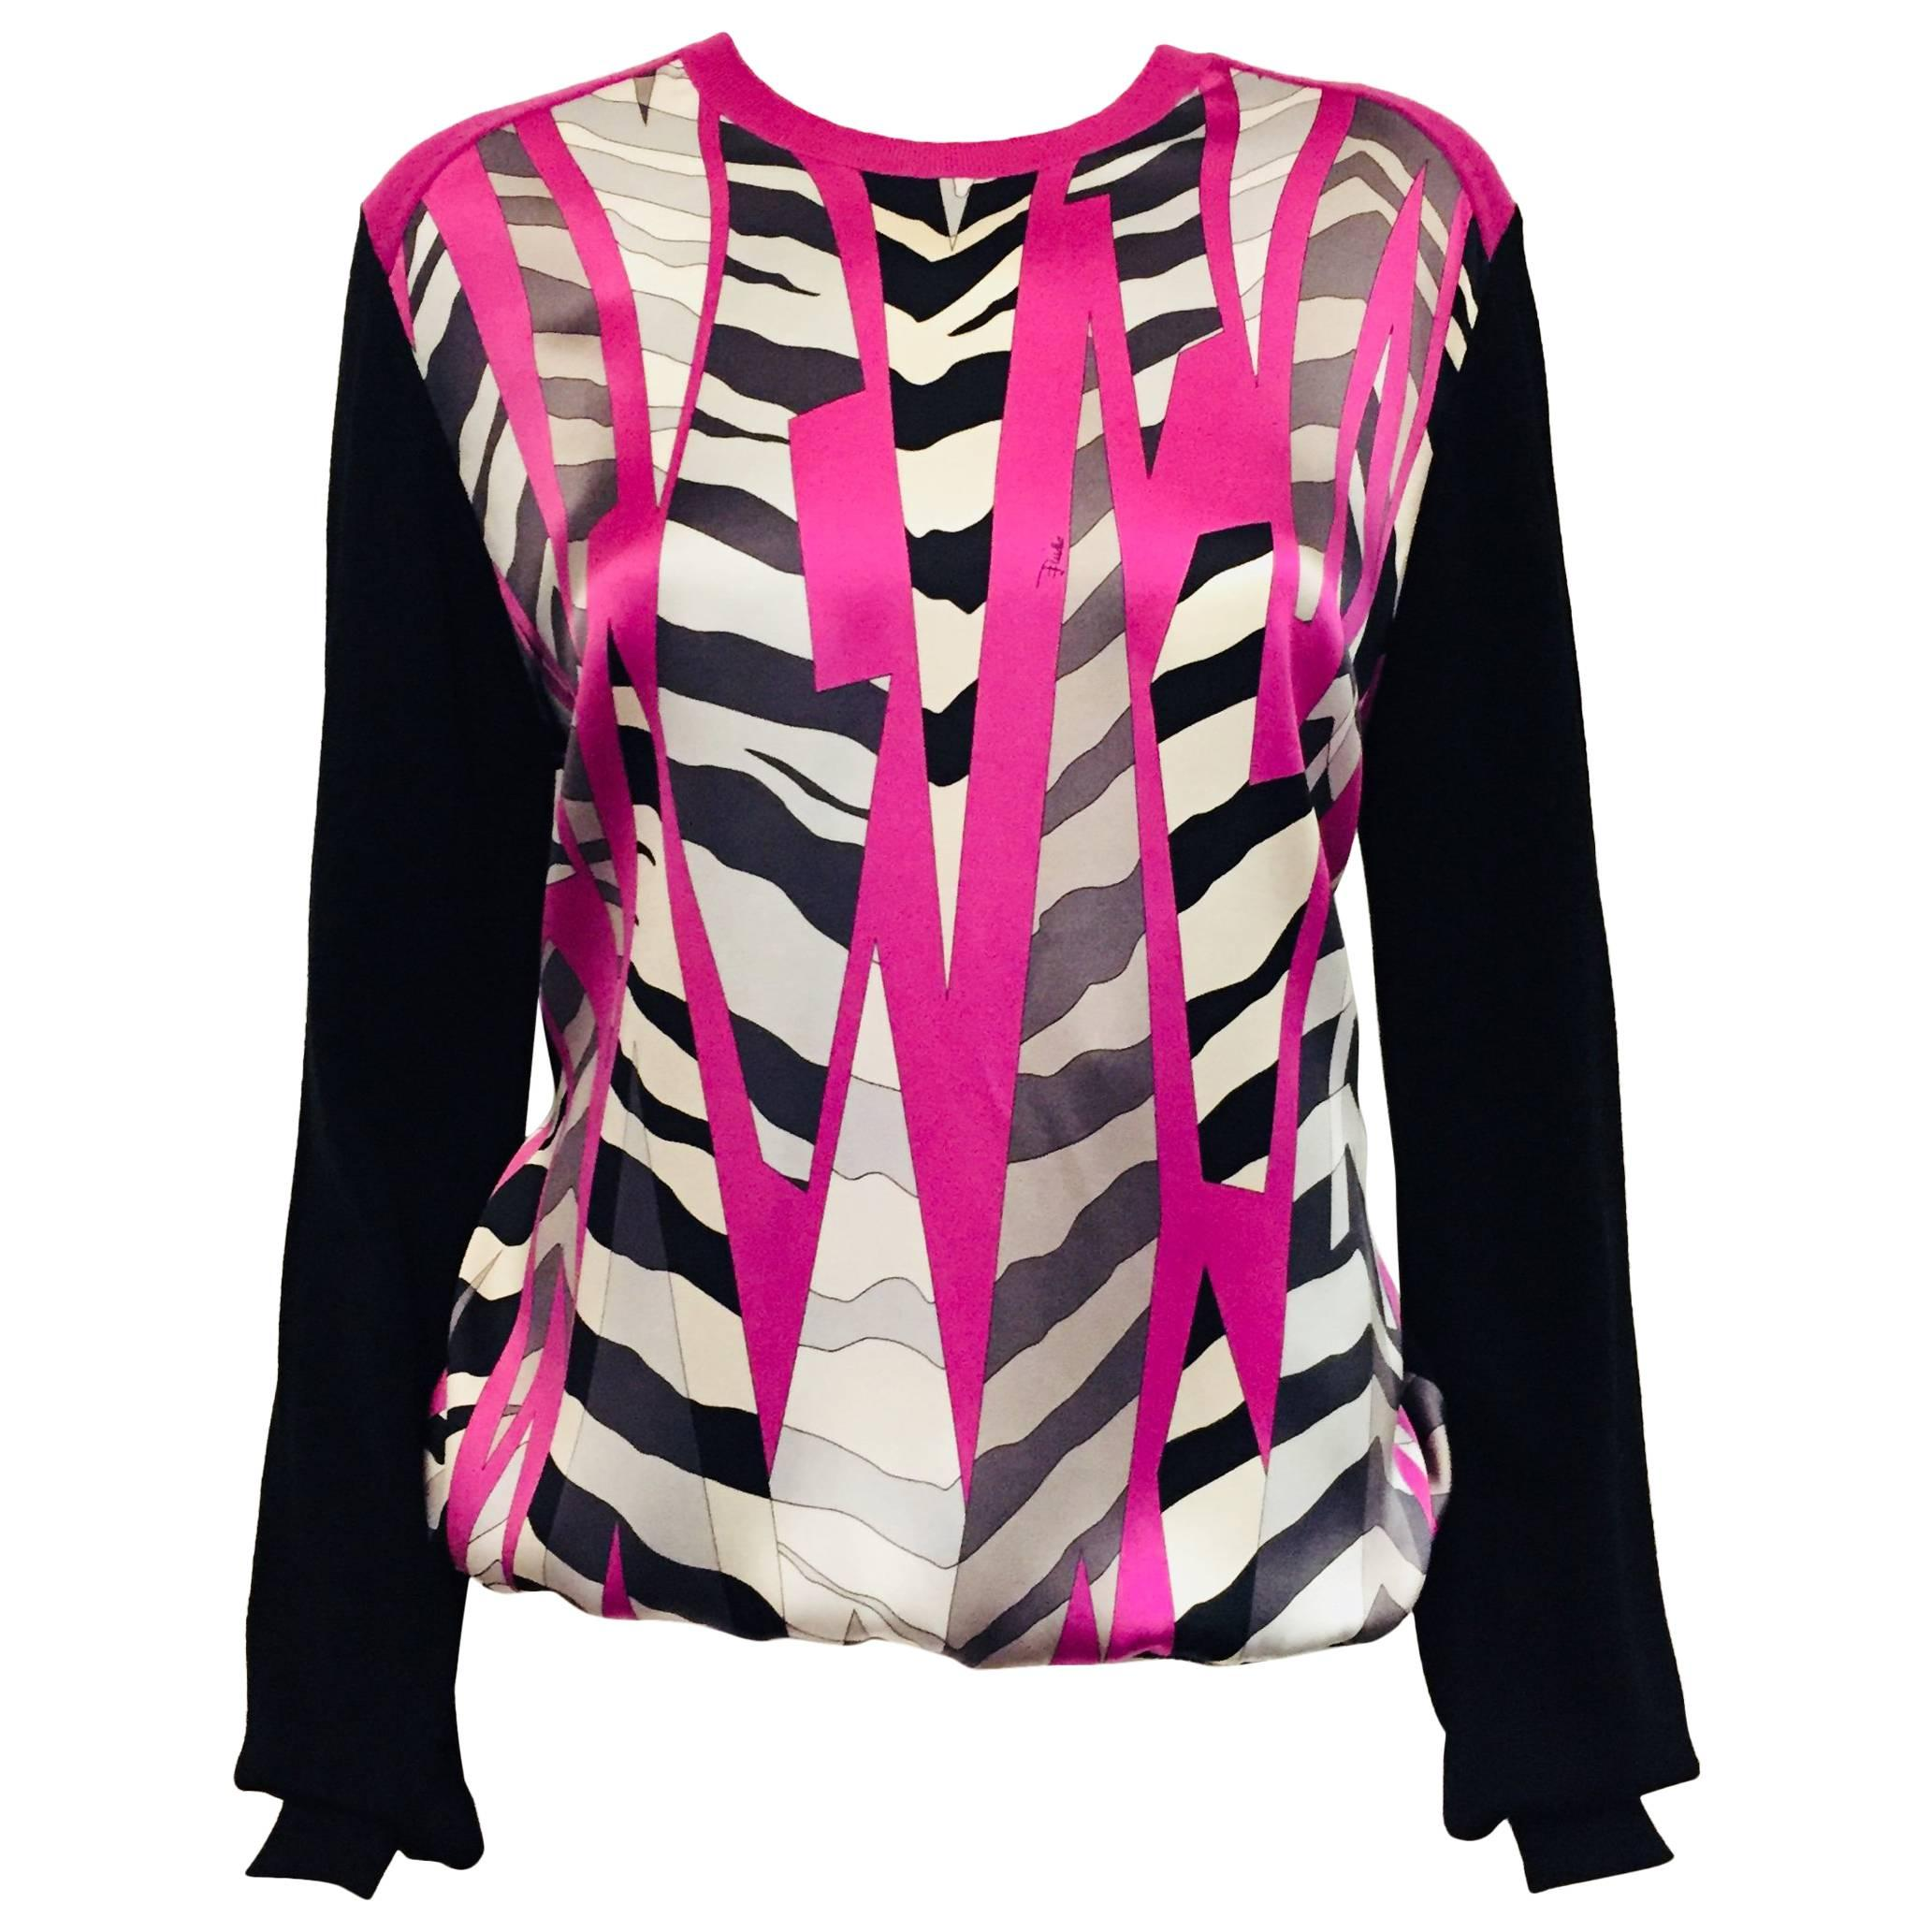 Exceptional emilio pucci abstract animal print black white and shocking pink top for sale at 1stdibs